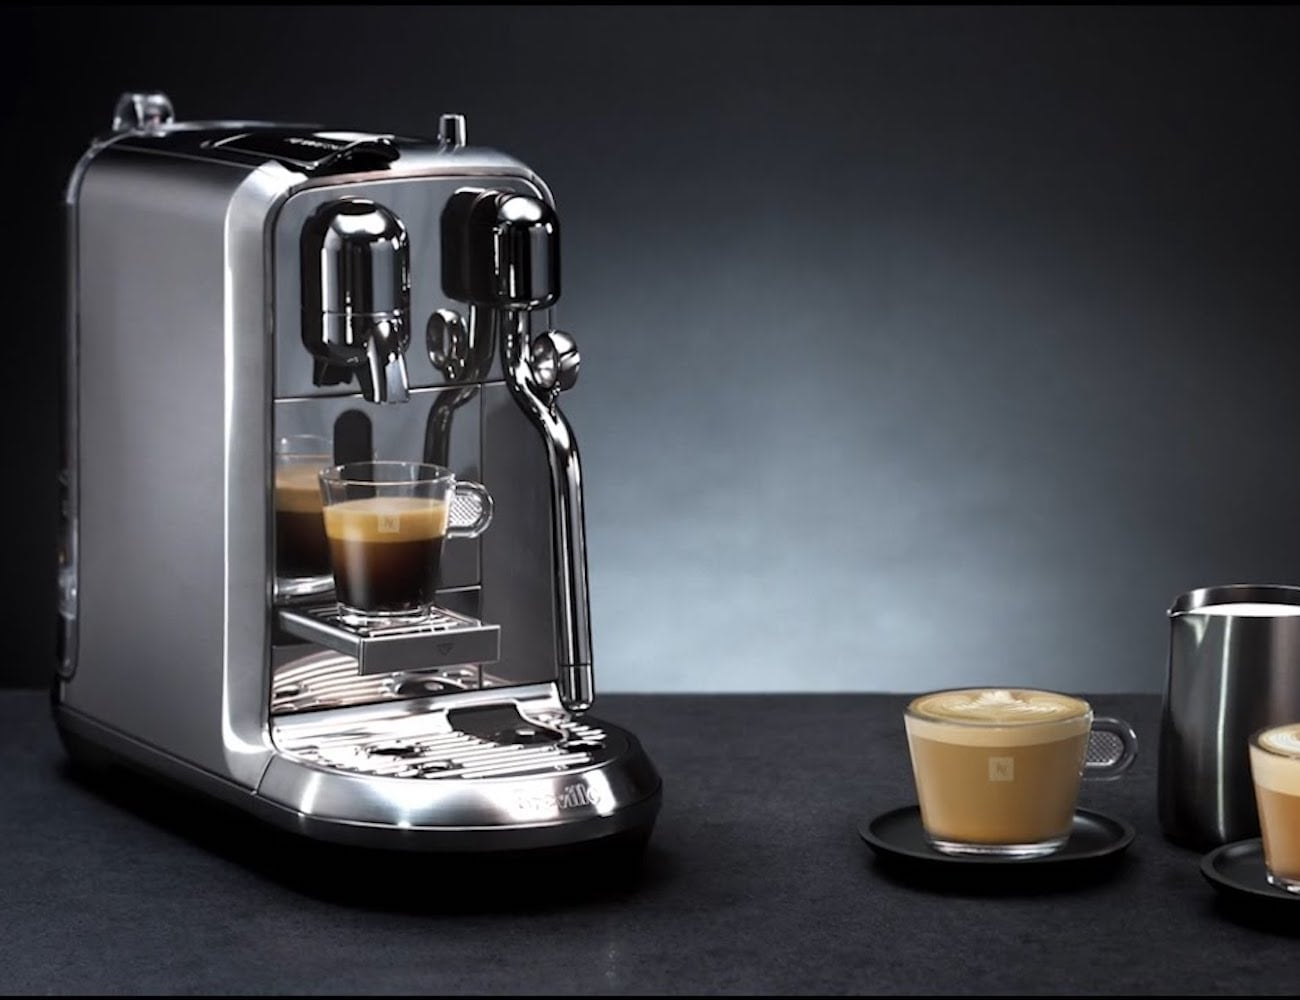 The best affordable espresso machines you can buy in 2019 - Breville Nespresso Creastista 2